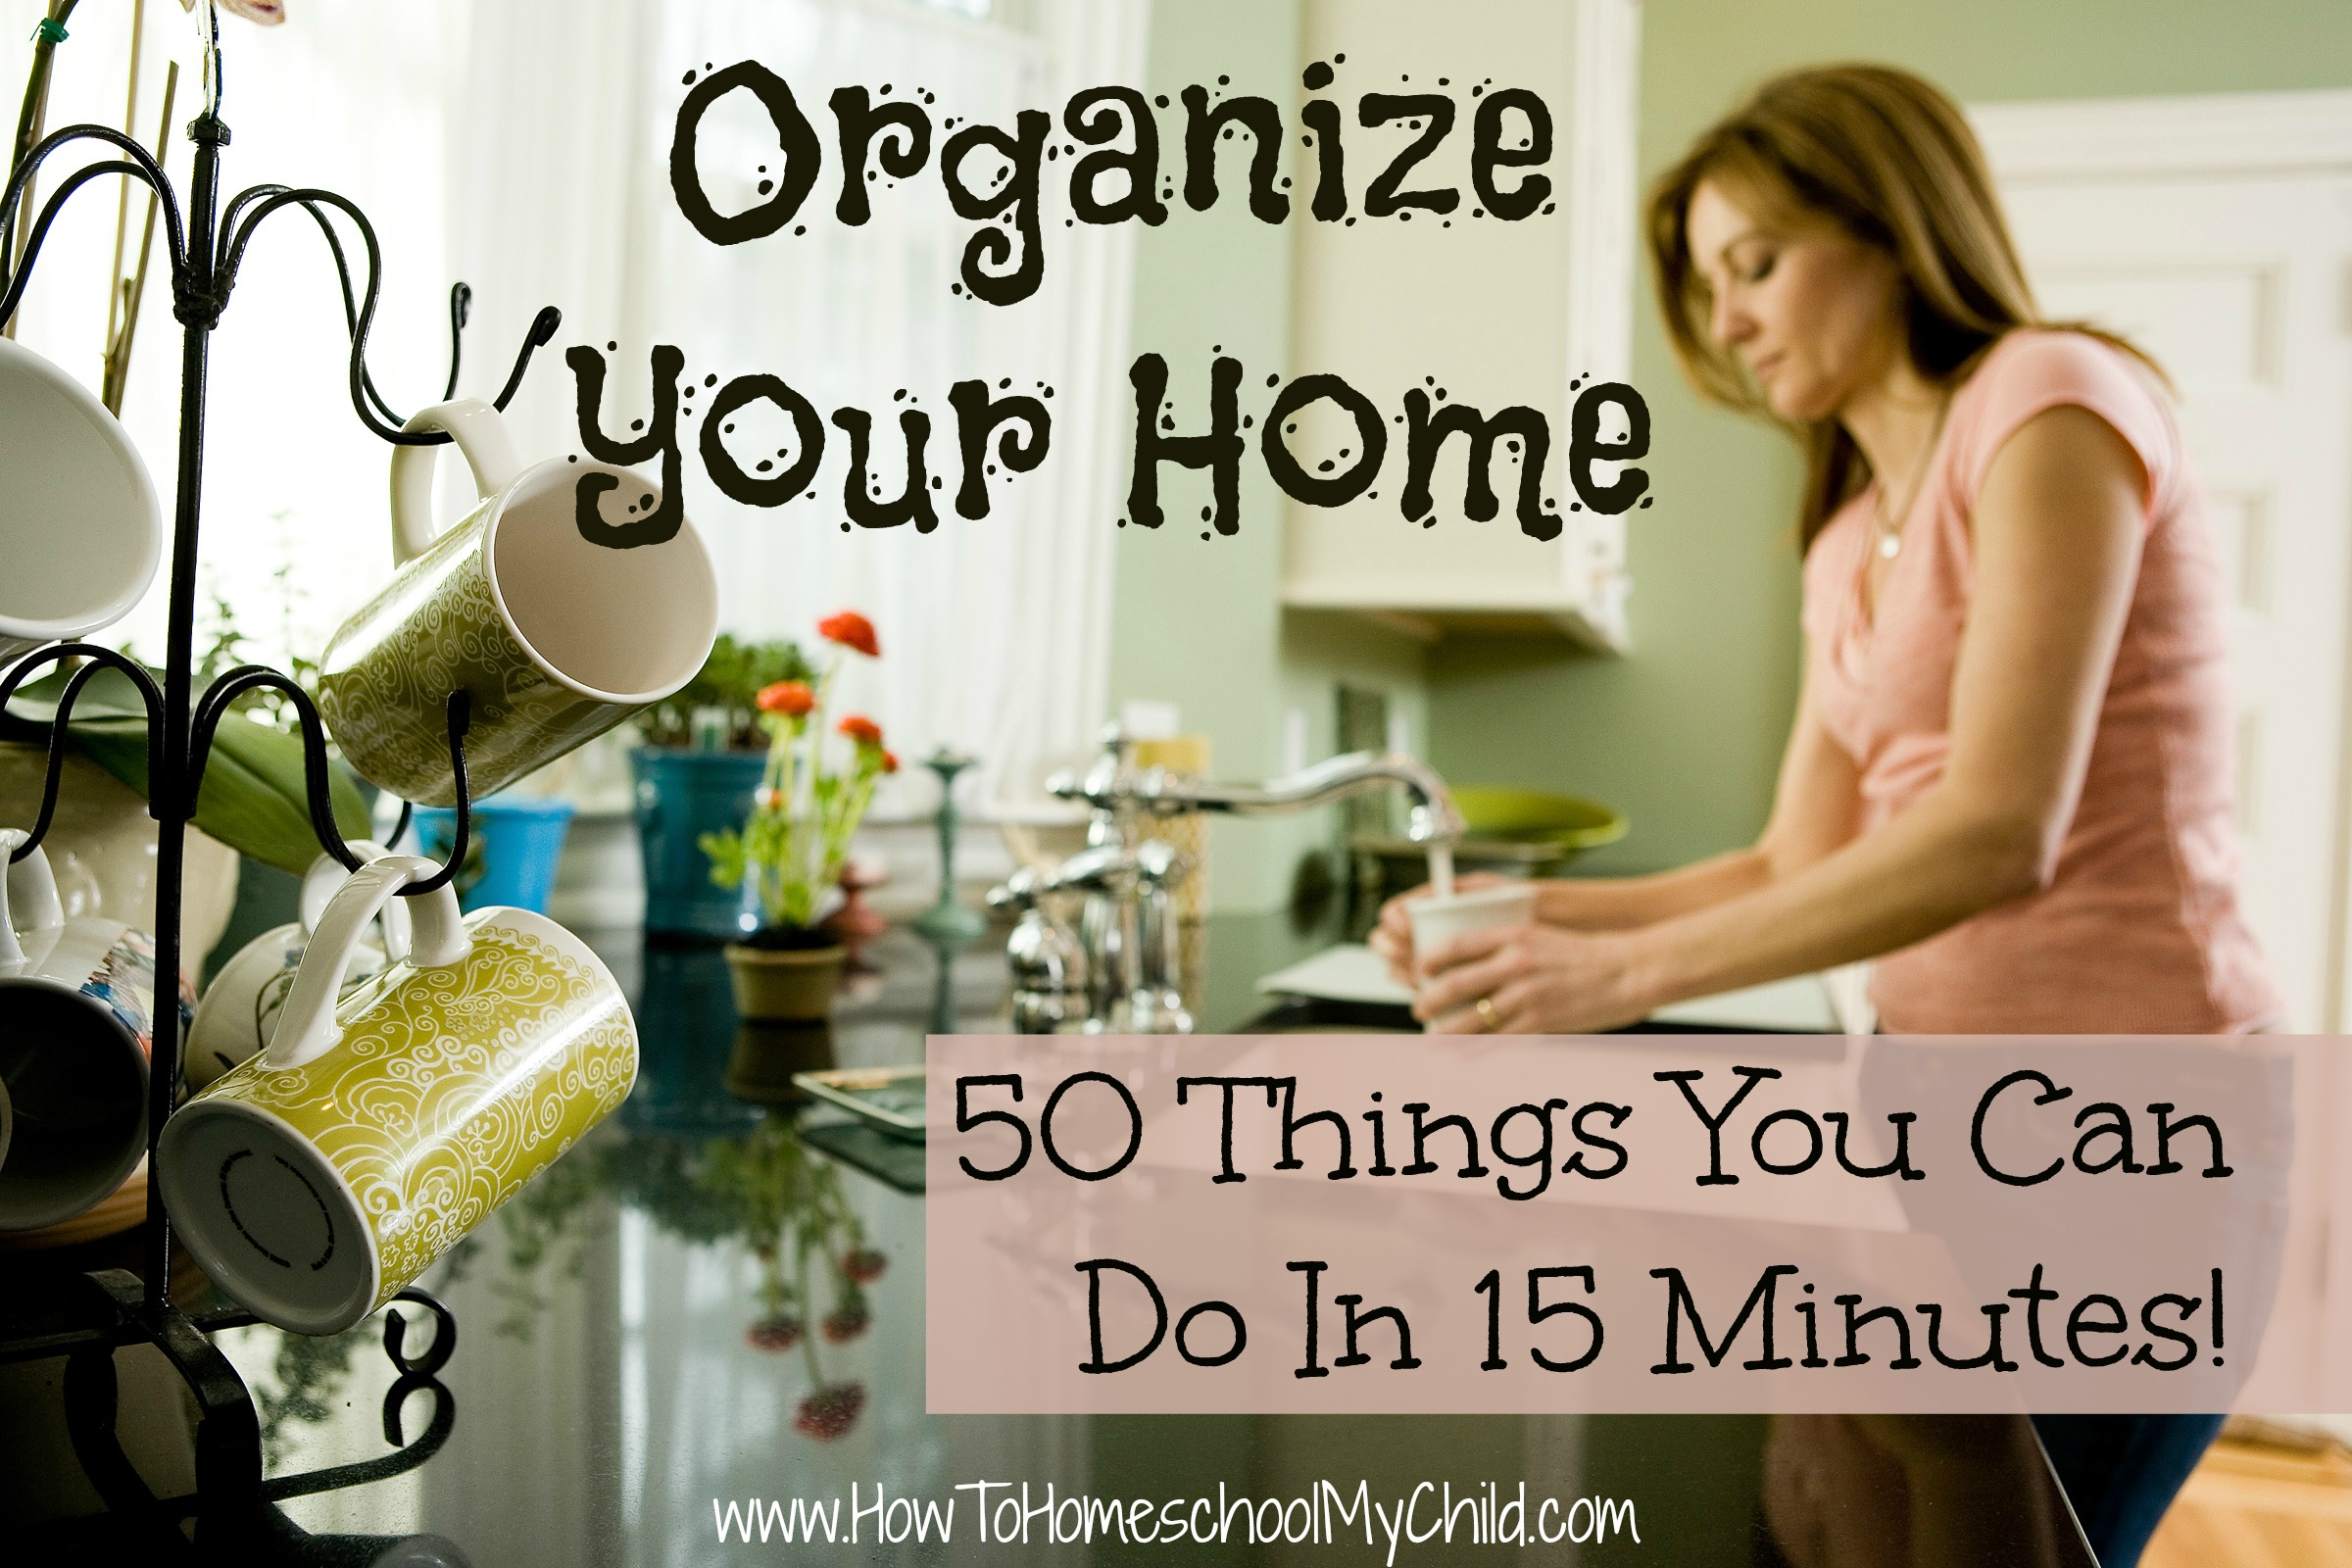 Discover 50 things you can do in 15 minutes to organize your home! Check out www.HowToHomeschoolMyChild.com